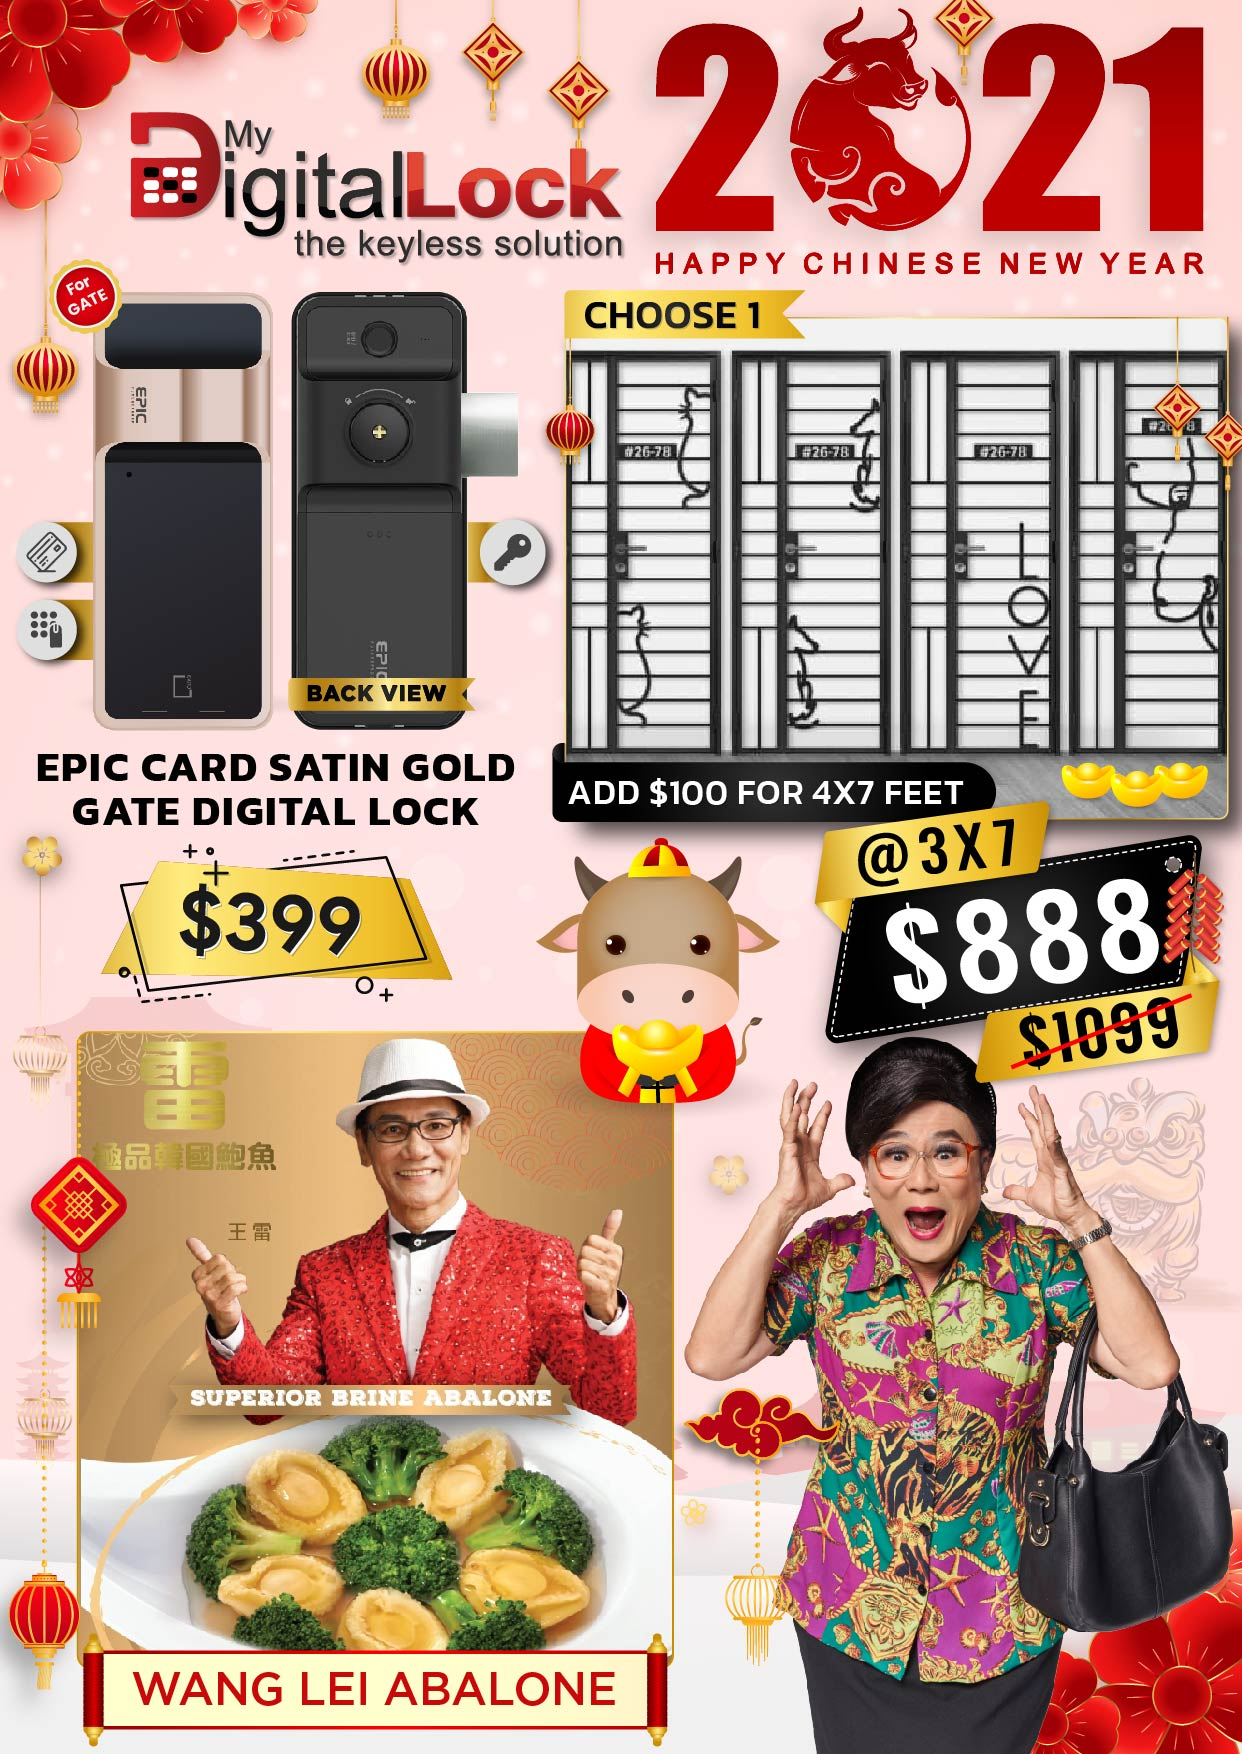 epiccard-sartingold-chinese-newyear-promotions